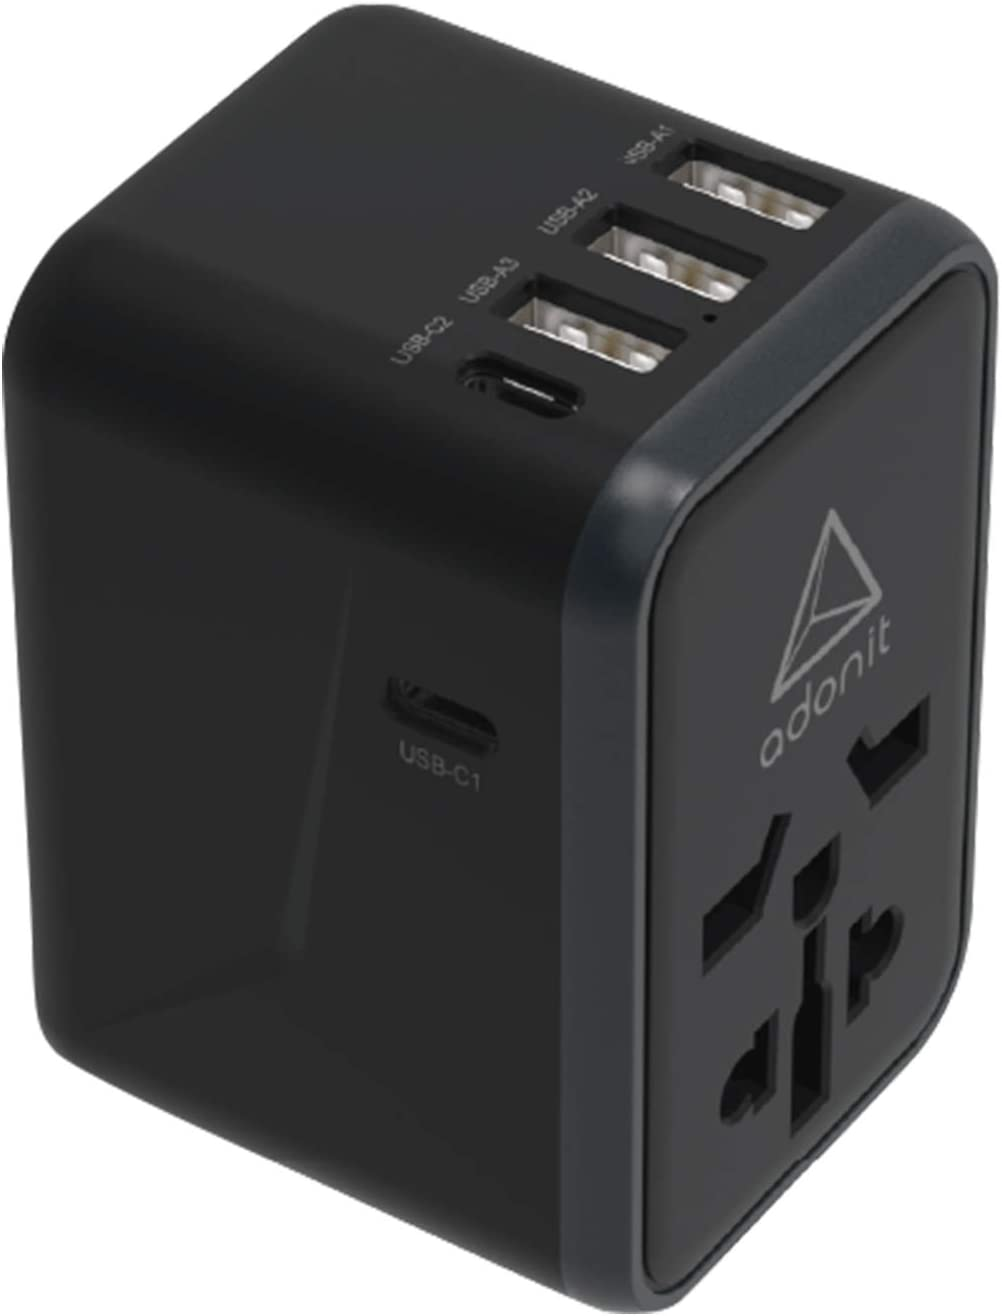 Adonit Universal Adapter PD-3A2C, MacBook Pro Charger Wall Charger AC Plug with 61W Power Adaptor. (EU UK USA AU Plug) Type C PD Wall Charger (3USB+2USB-C) for MacBook/Air, Dell XPS, iPad Pro, iPhone